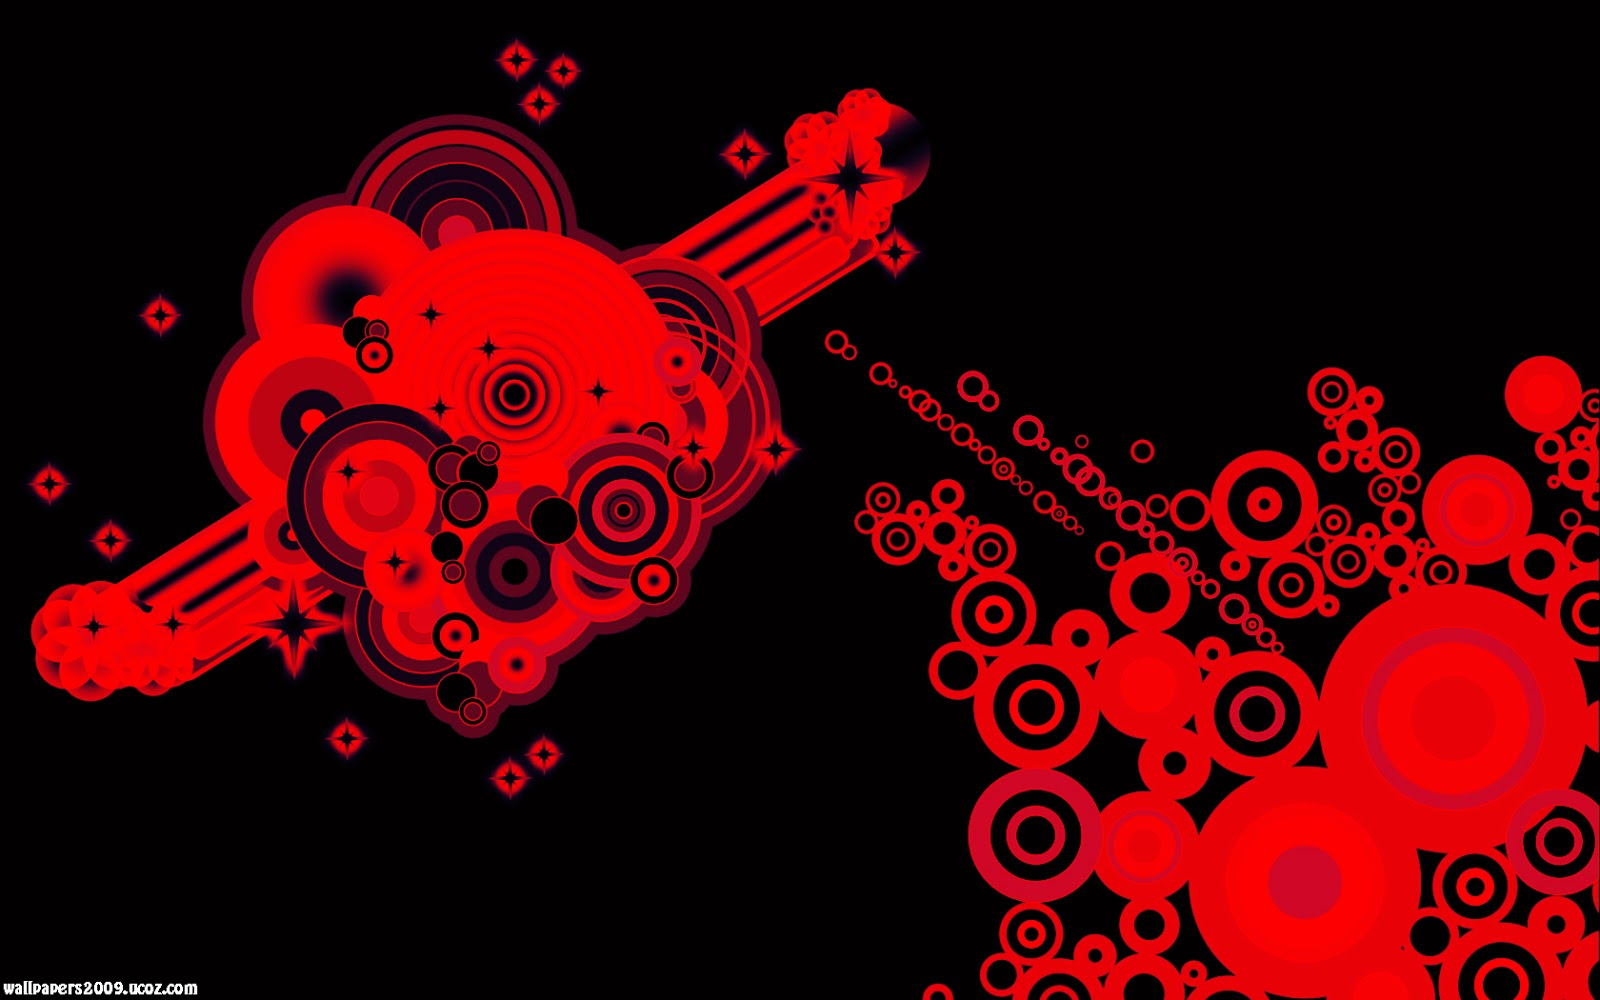 Download Free Desktop Wallpapers Some Red Abstract Jpg 1600x1000 Background Pretty Wallpaper Music